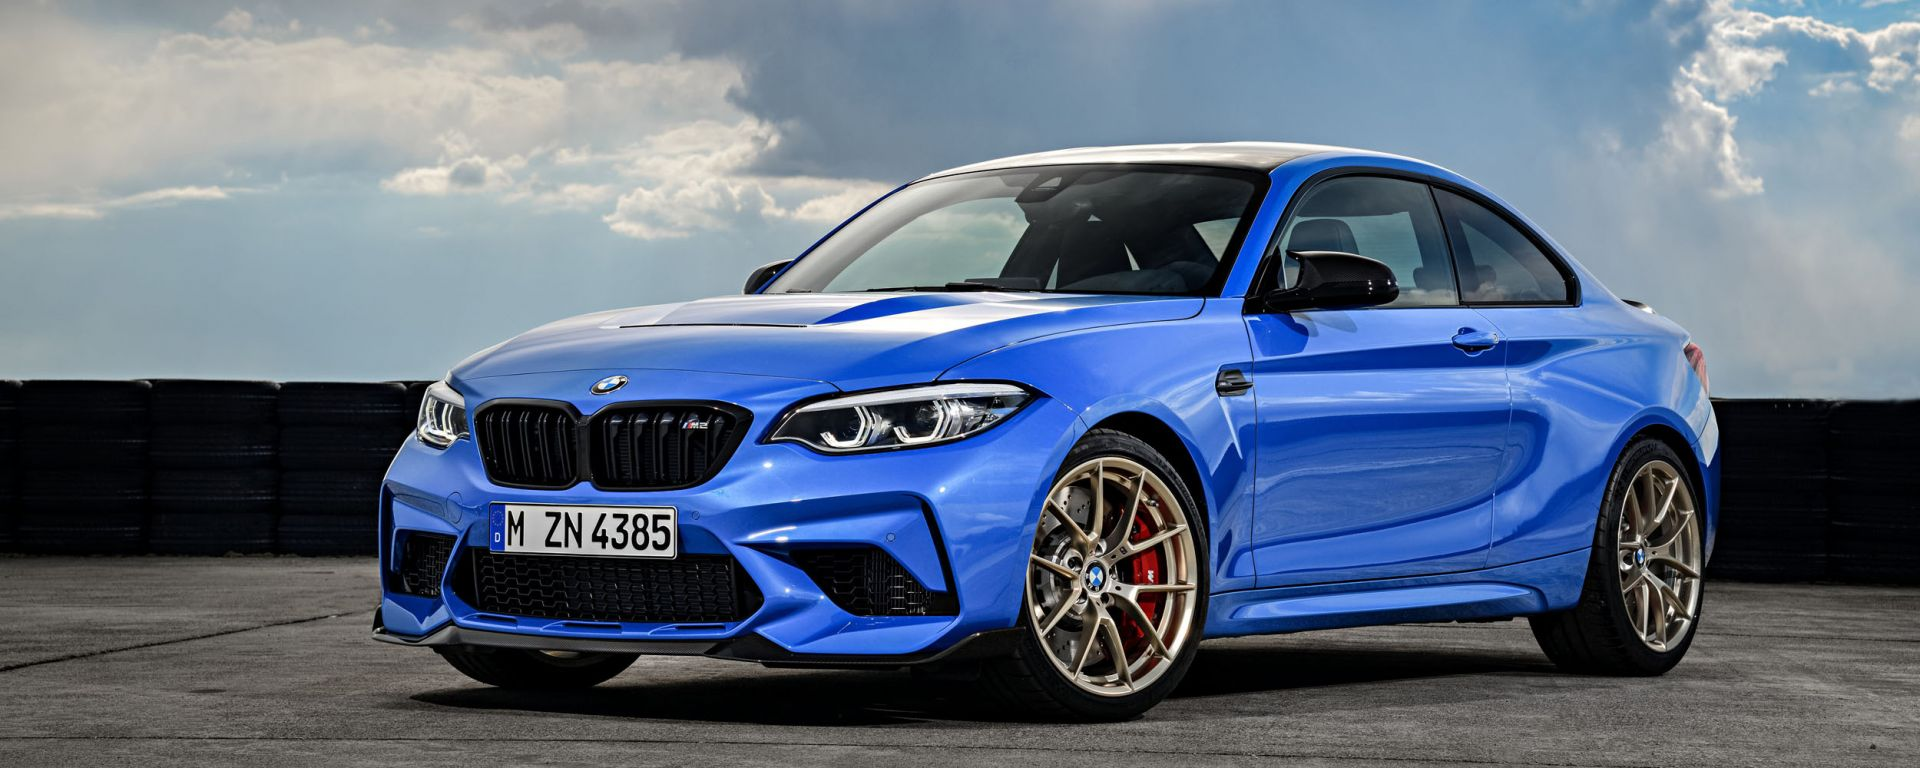 BMW M2 CS 2020: vista di 3/4 anteriore